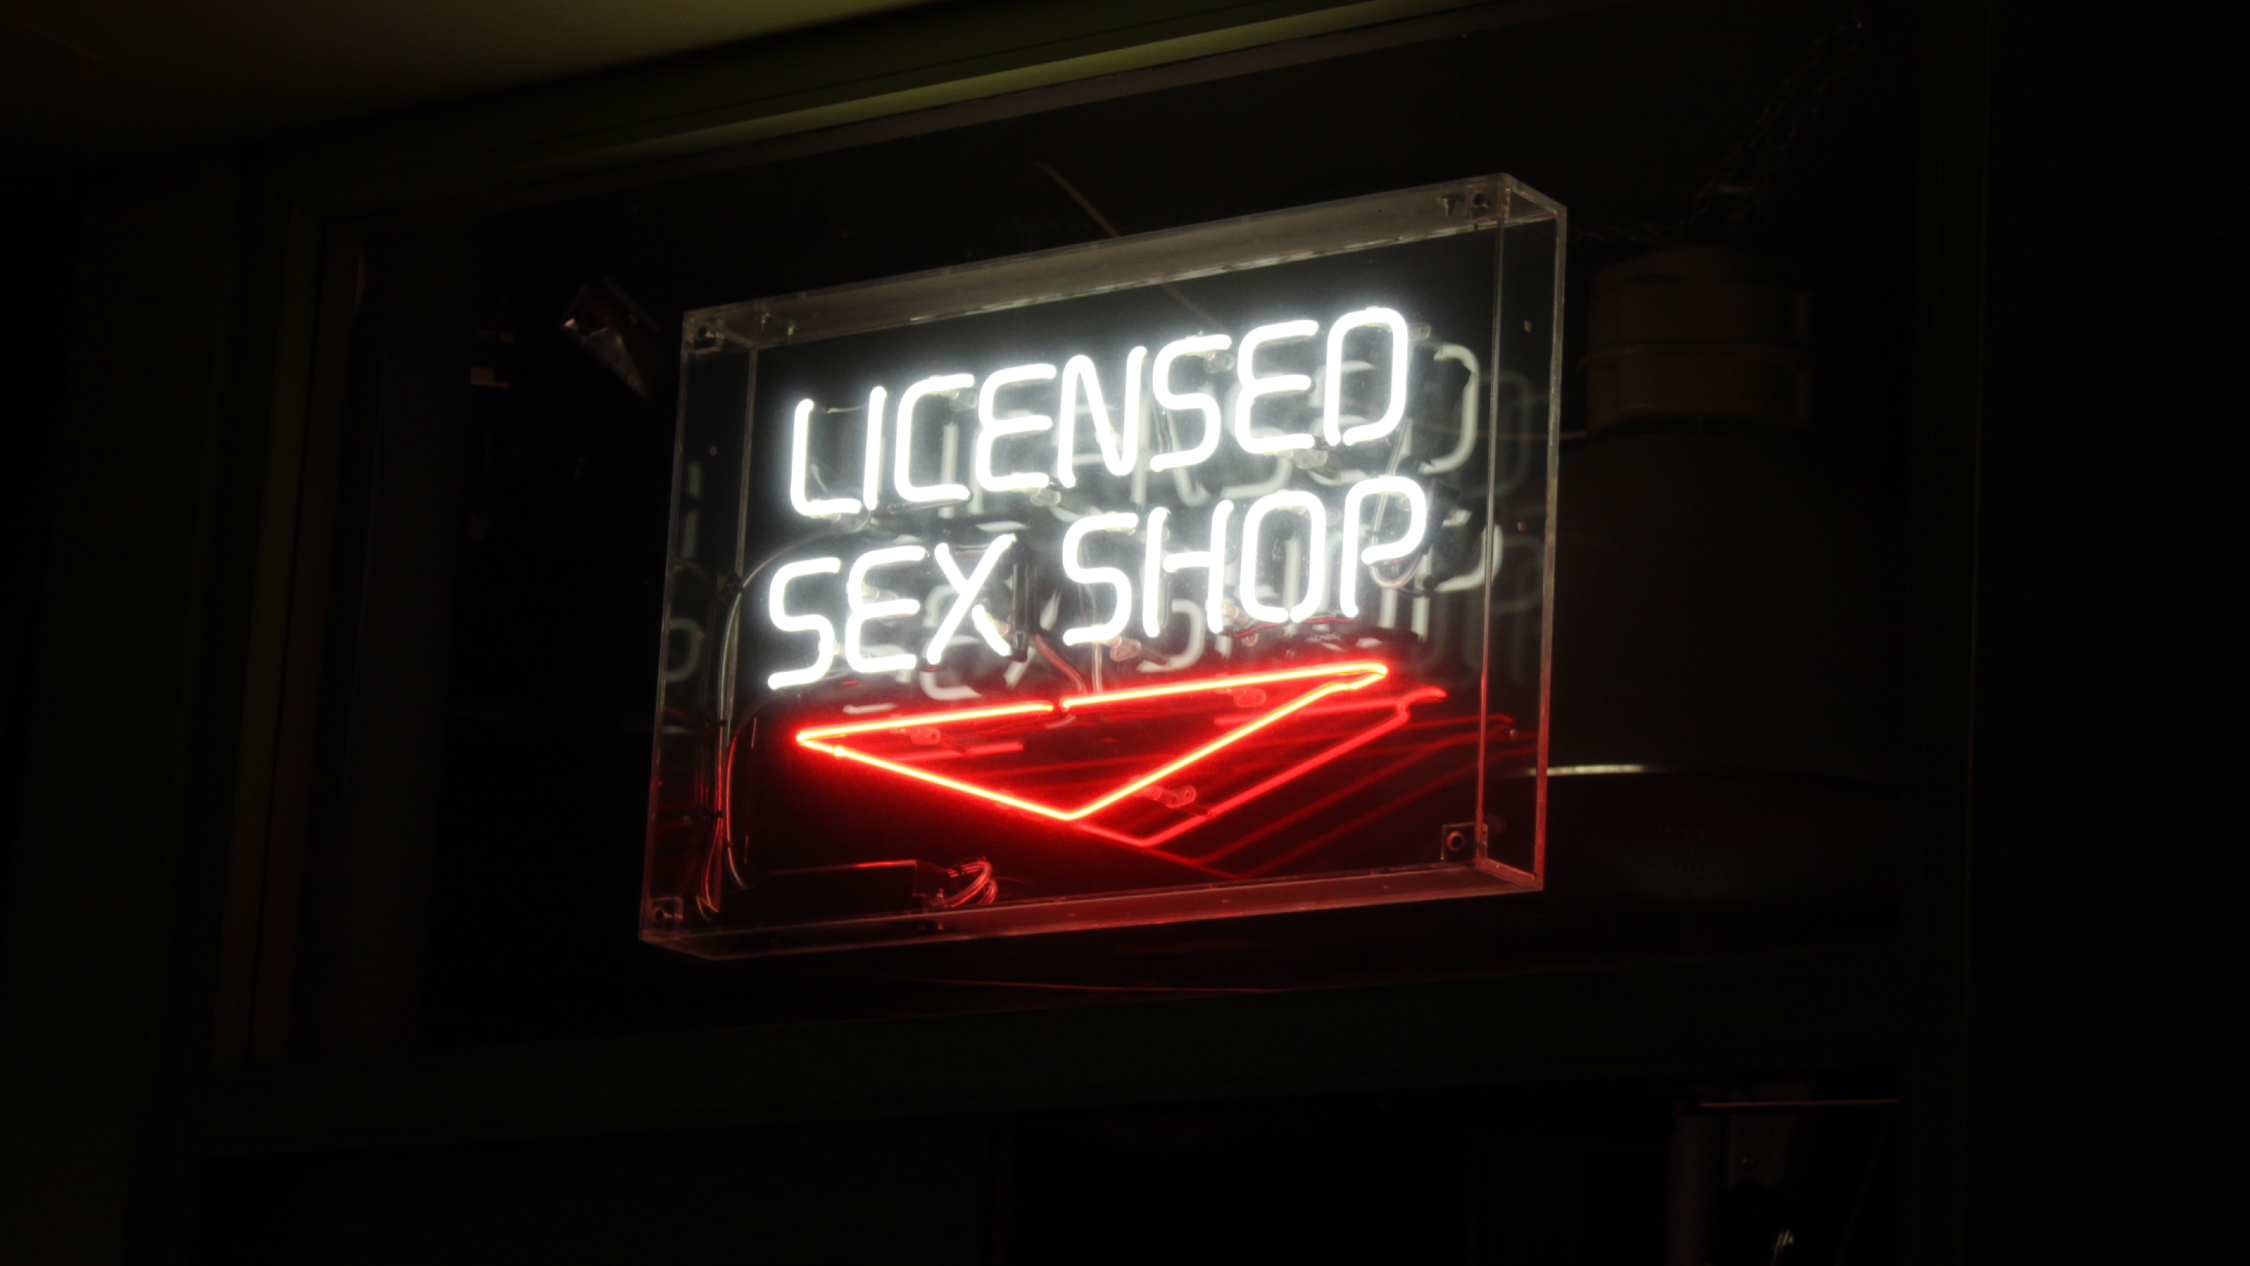 Sex store sign